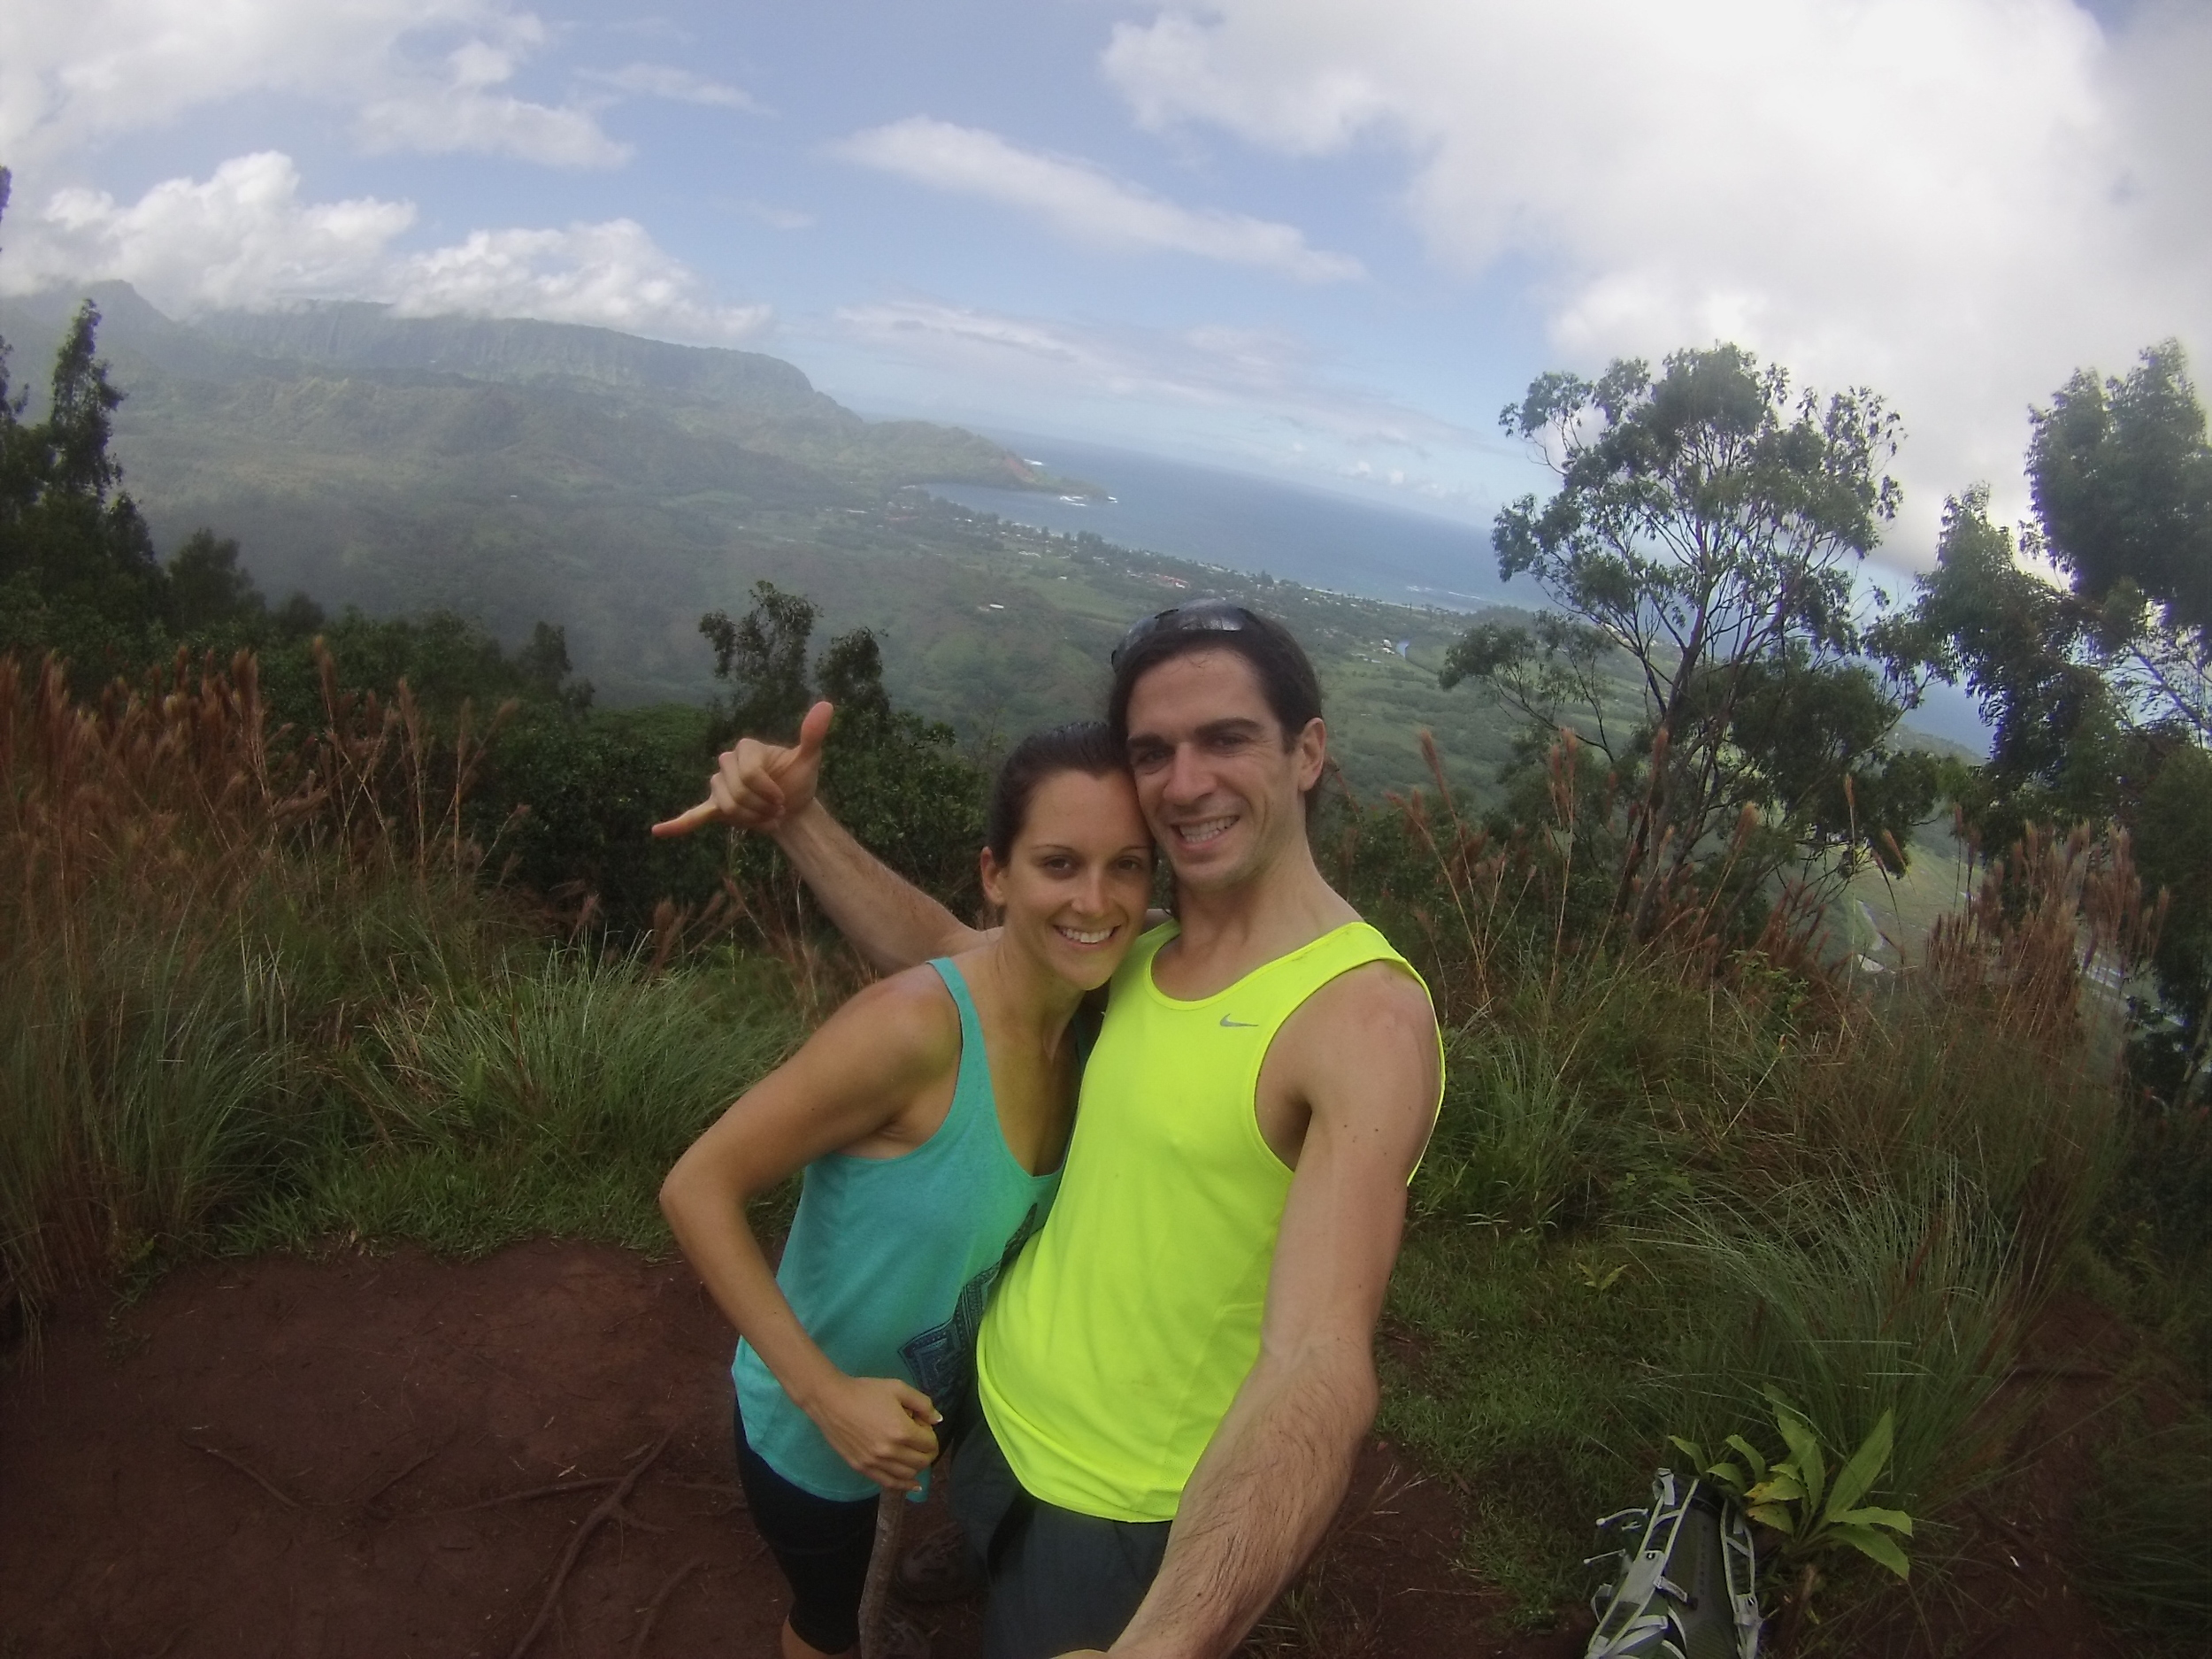 hanging loose with my wifey in hawaii!